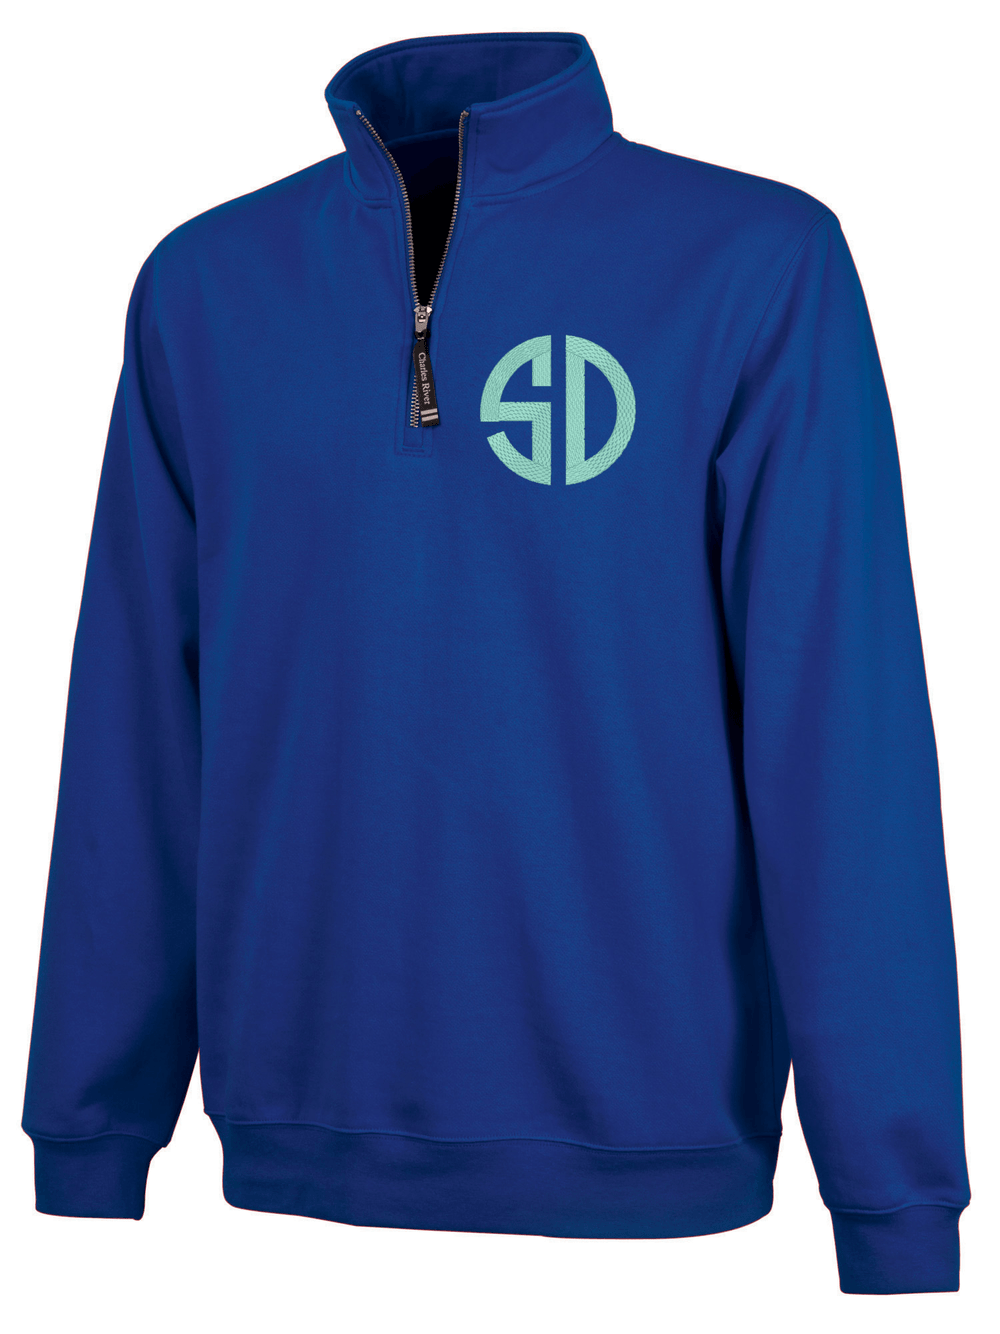 Monogrammed Quarter Zip Sweatshirt with Pockets